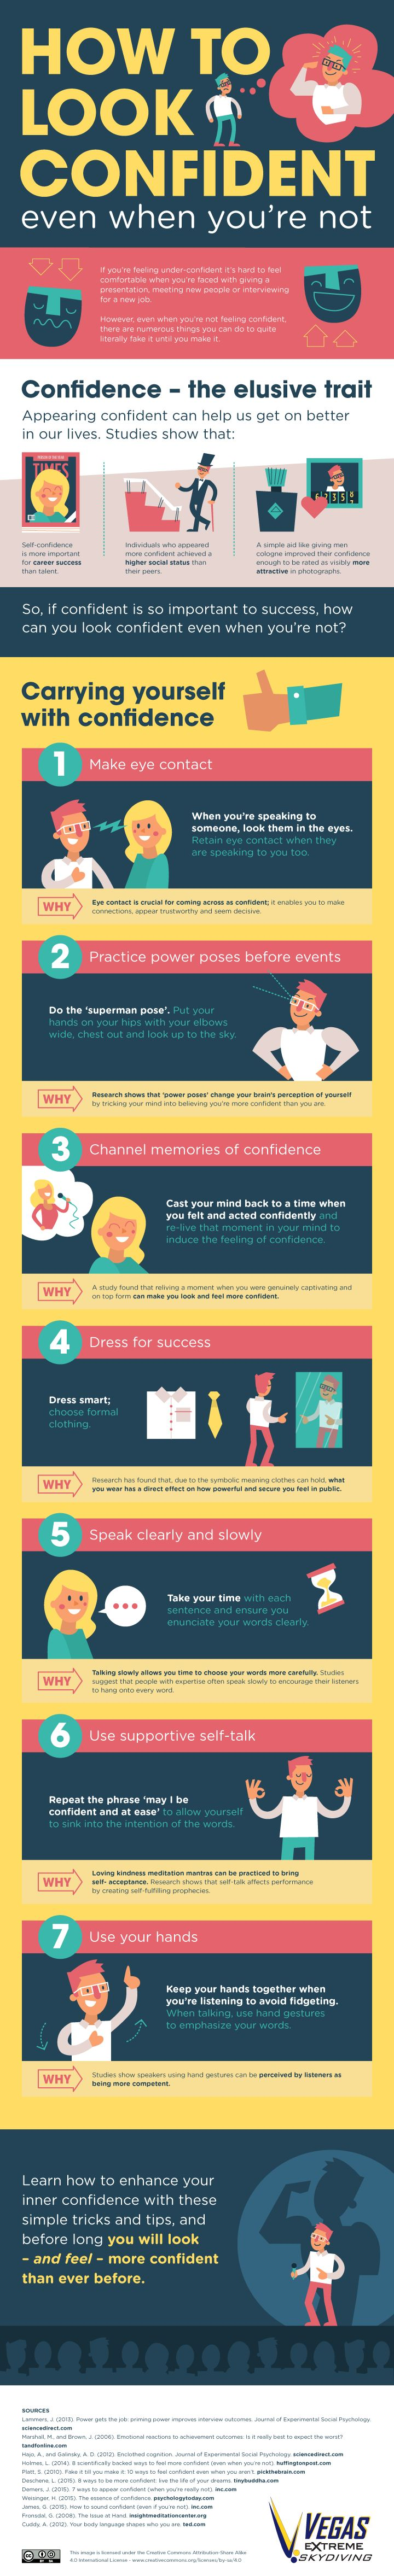 How to Appear Confident, Even When You're Not [Infographic] - little tricks and tips to coax out that confidence! And if you can fake it, you can definitely become it.